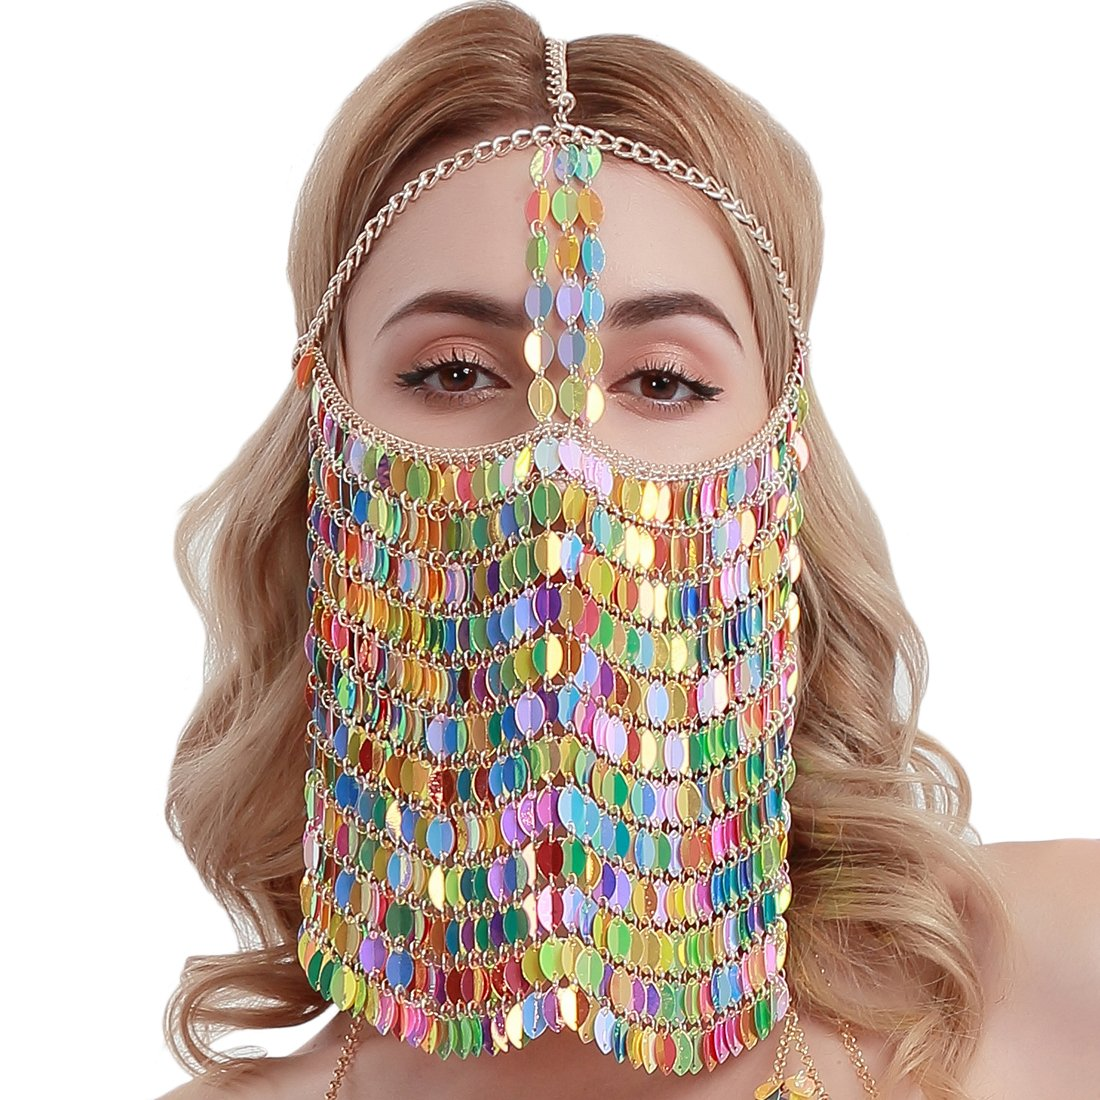 CCbodily Face Mask Chains Jewelry Harness Colorful Masquerade Mask Body Jewelry for Women Party